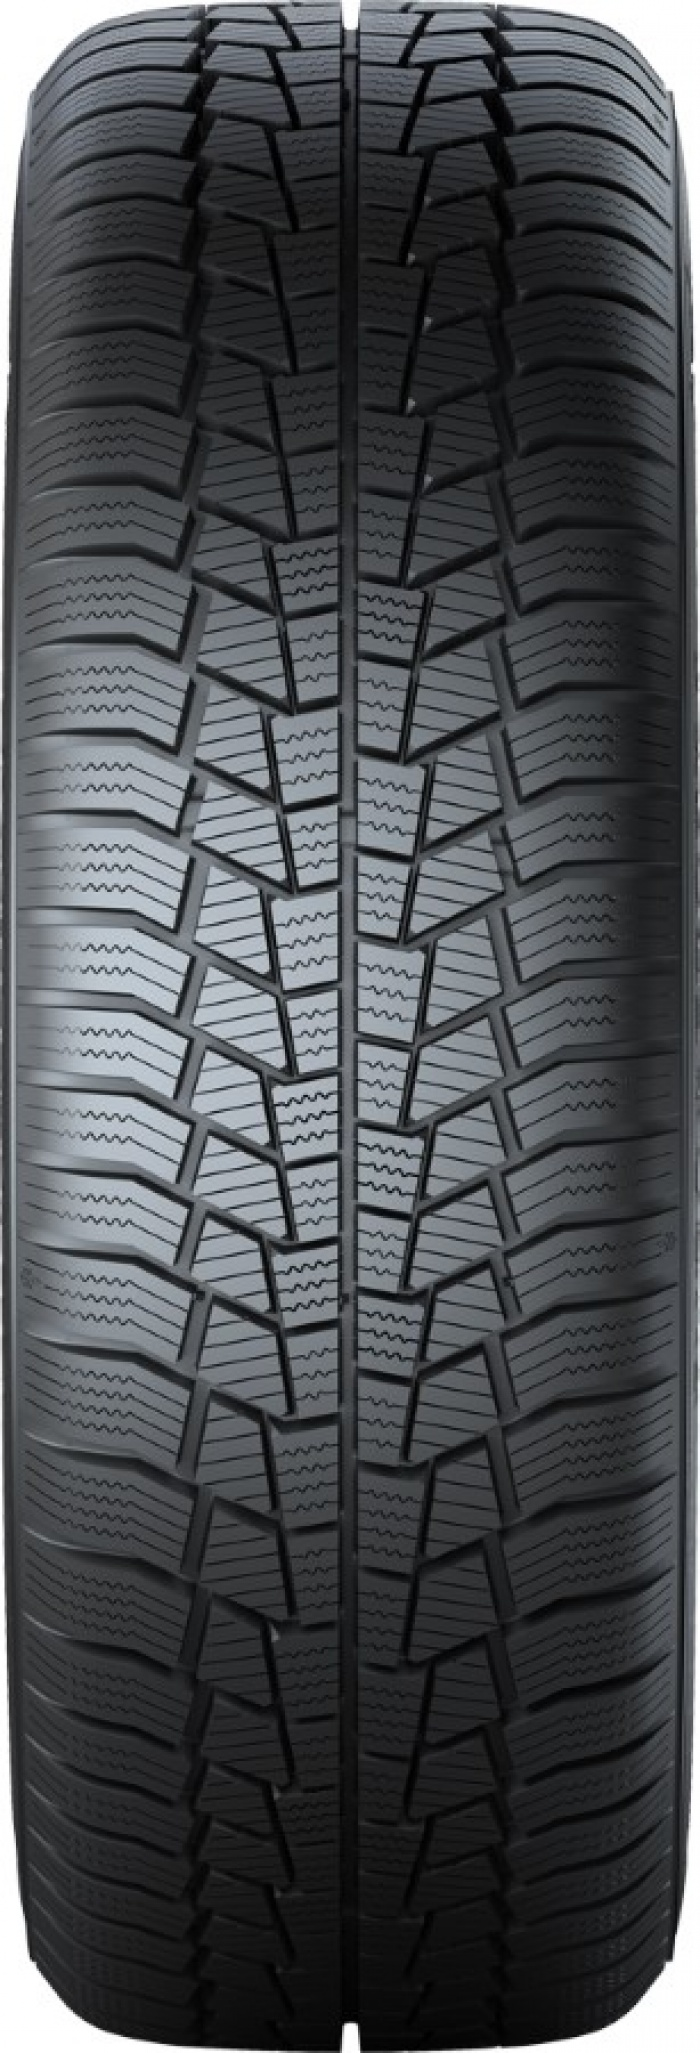 Gislaved Euro Frost 6 185/70 R14 88T  не шип